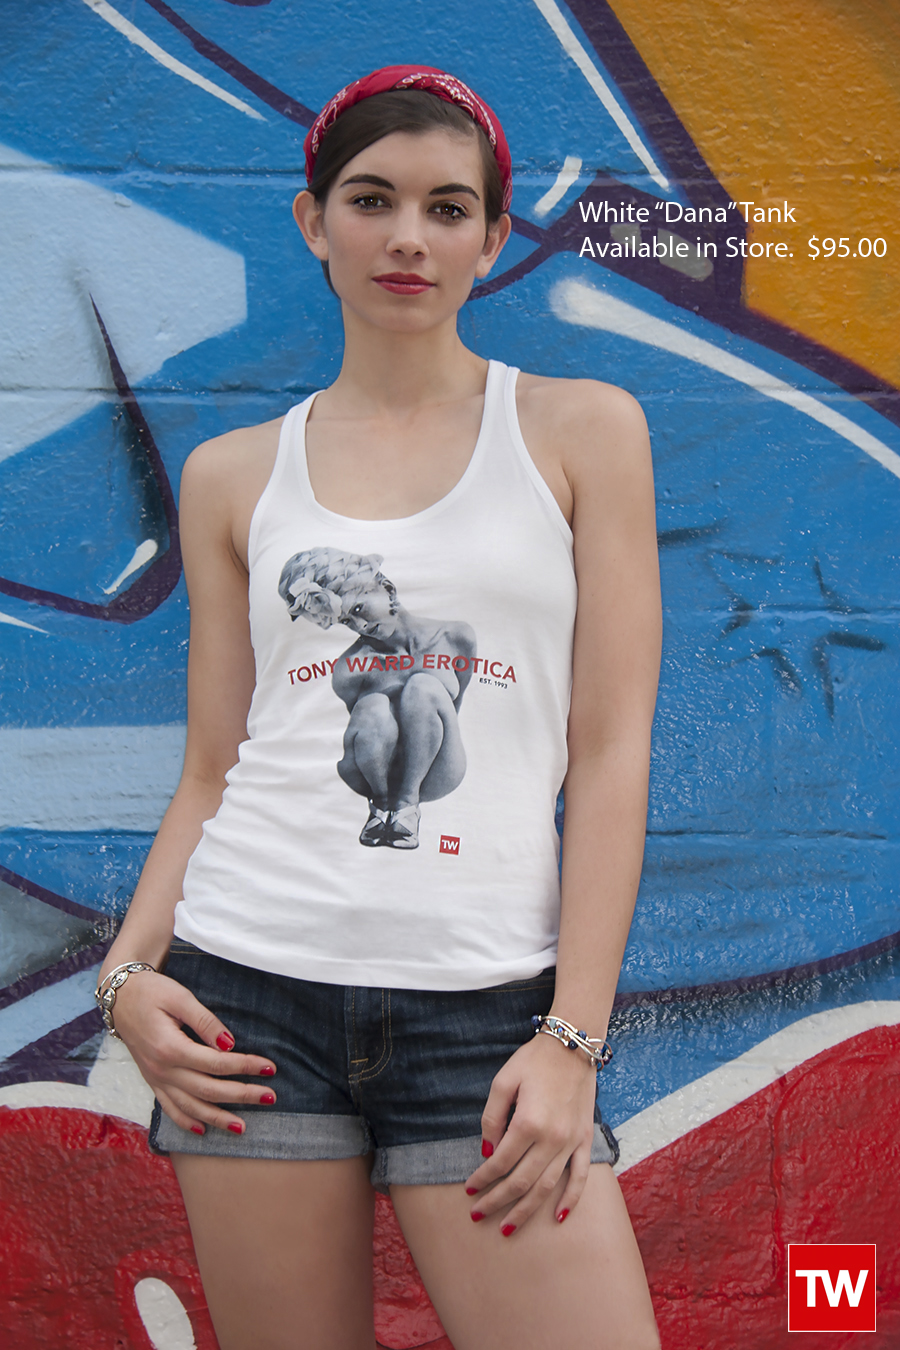 Tony_Ward_Studio_e_commerce_store_t-shirts_white_dana_tank_sale_model_Kathryn